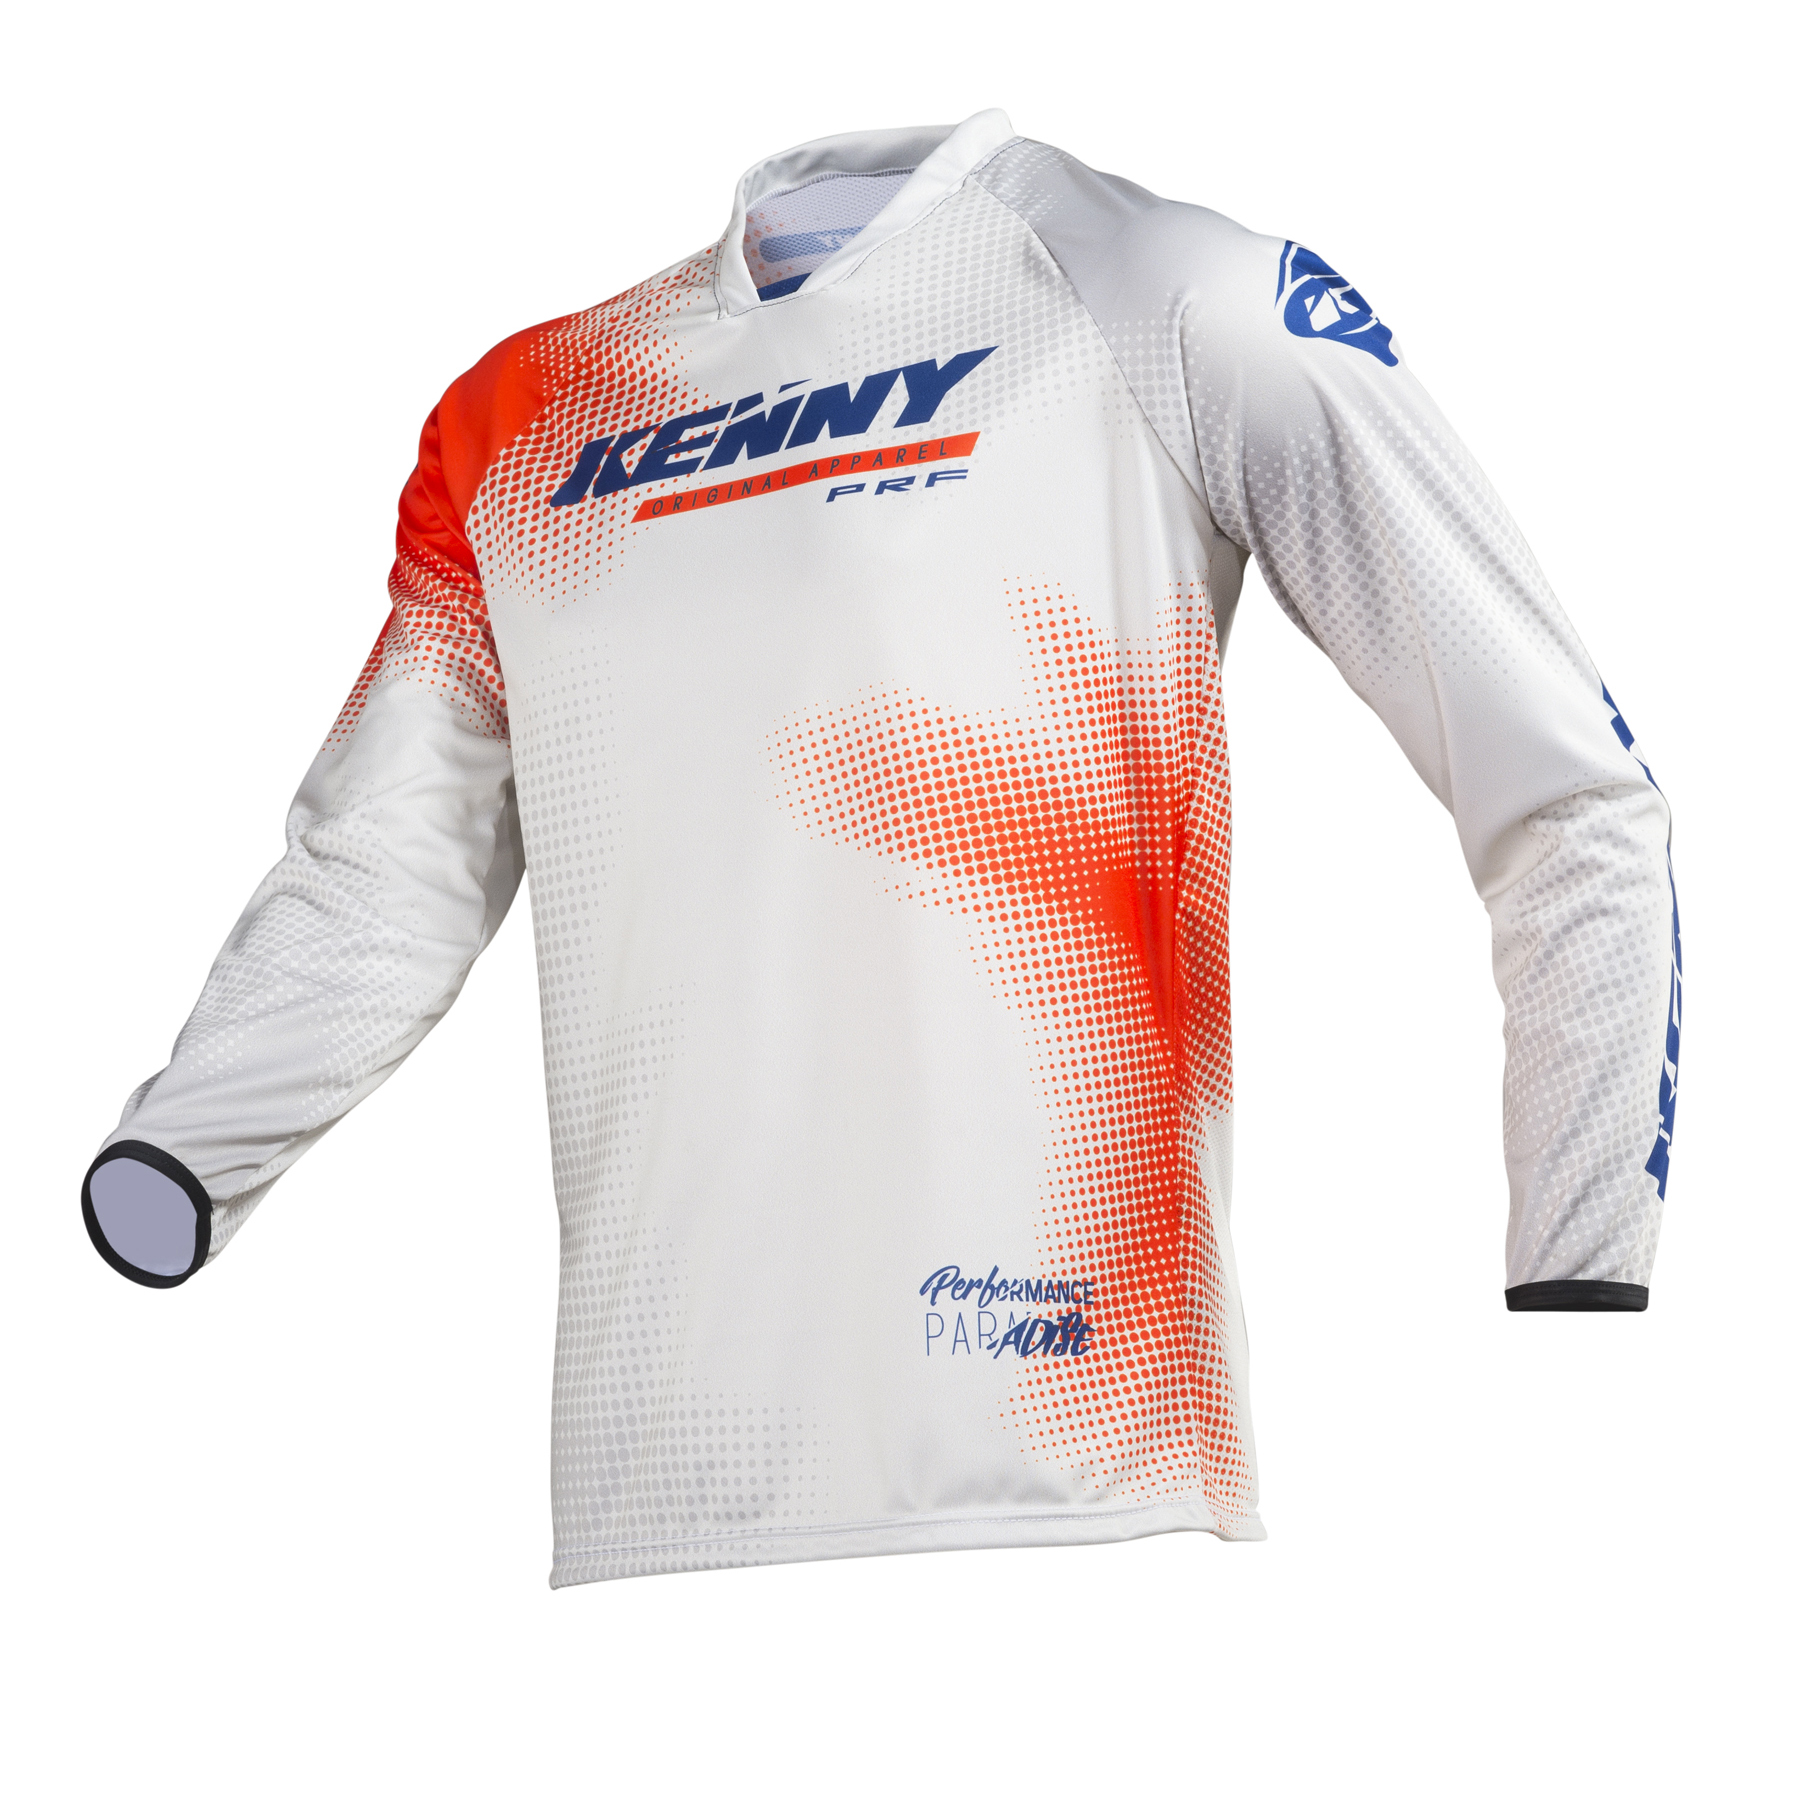 191-3302011-88 Kenny Racing 2019 Performance Paradise DZR Motocross Jersey Enduro Trikot Crosstrui Maillot Offroad